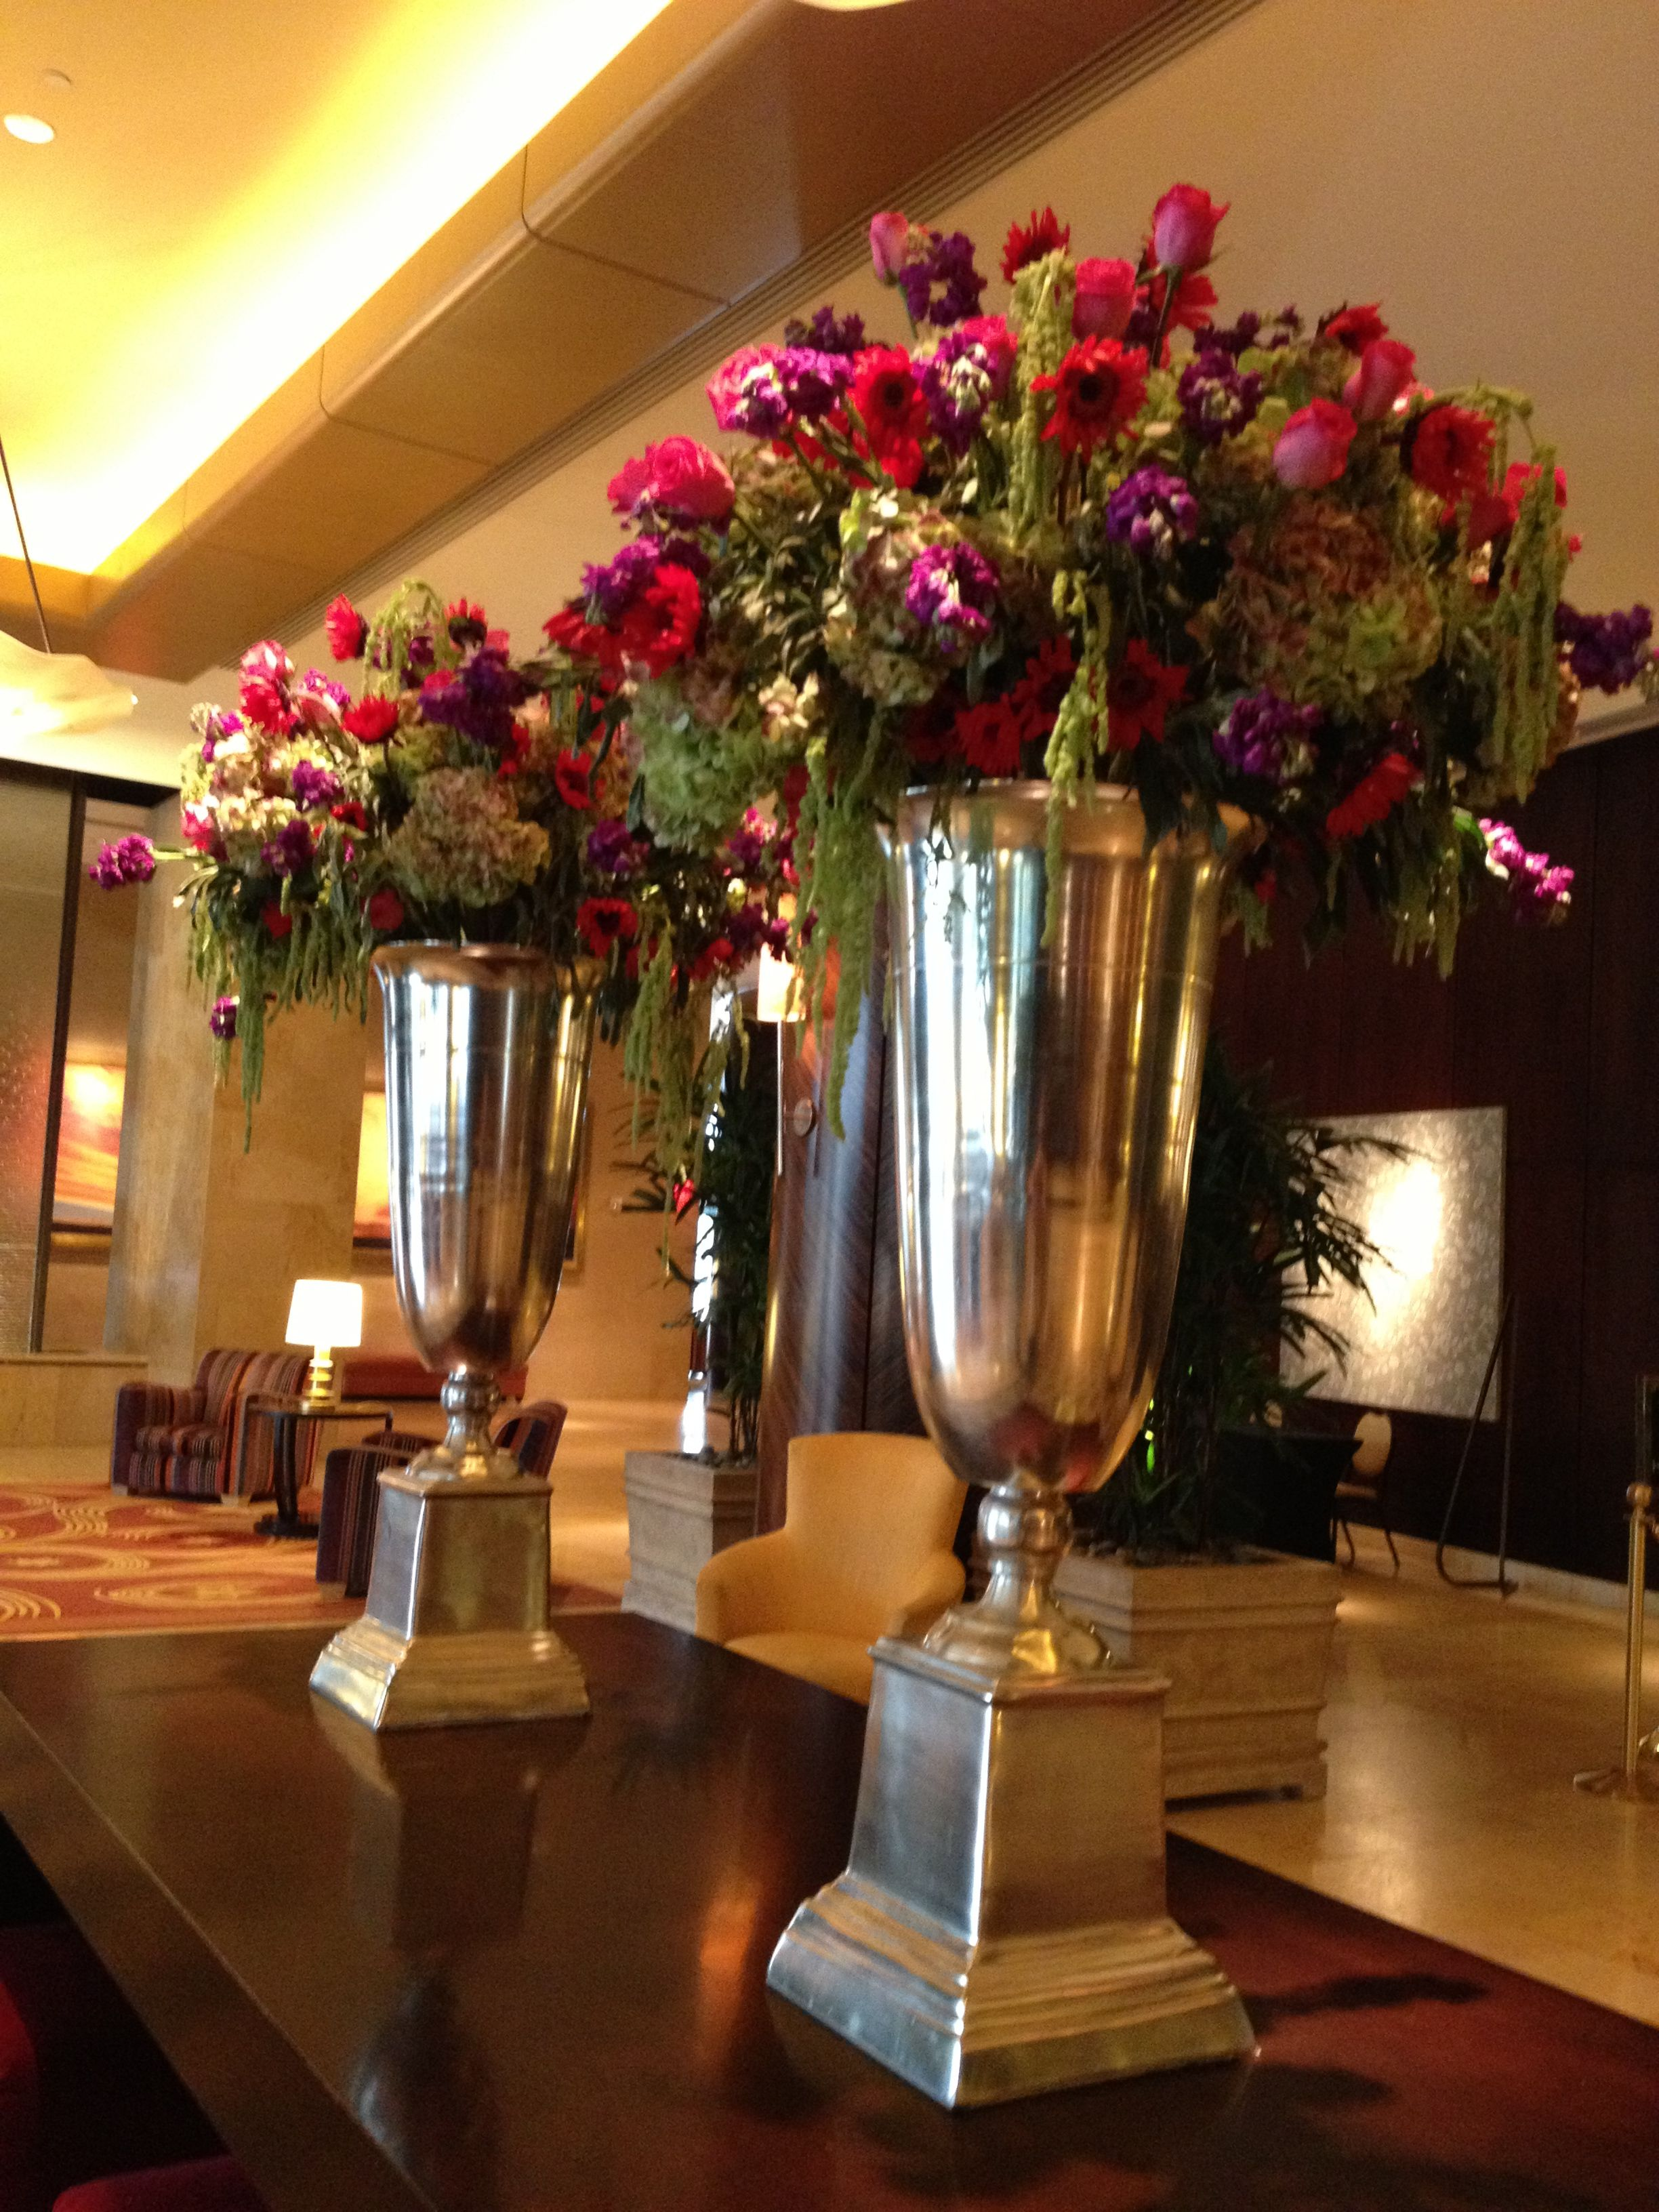 Floral Decor: Hotel Lobby Flowers At Hilton Americas Downtown Houston